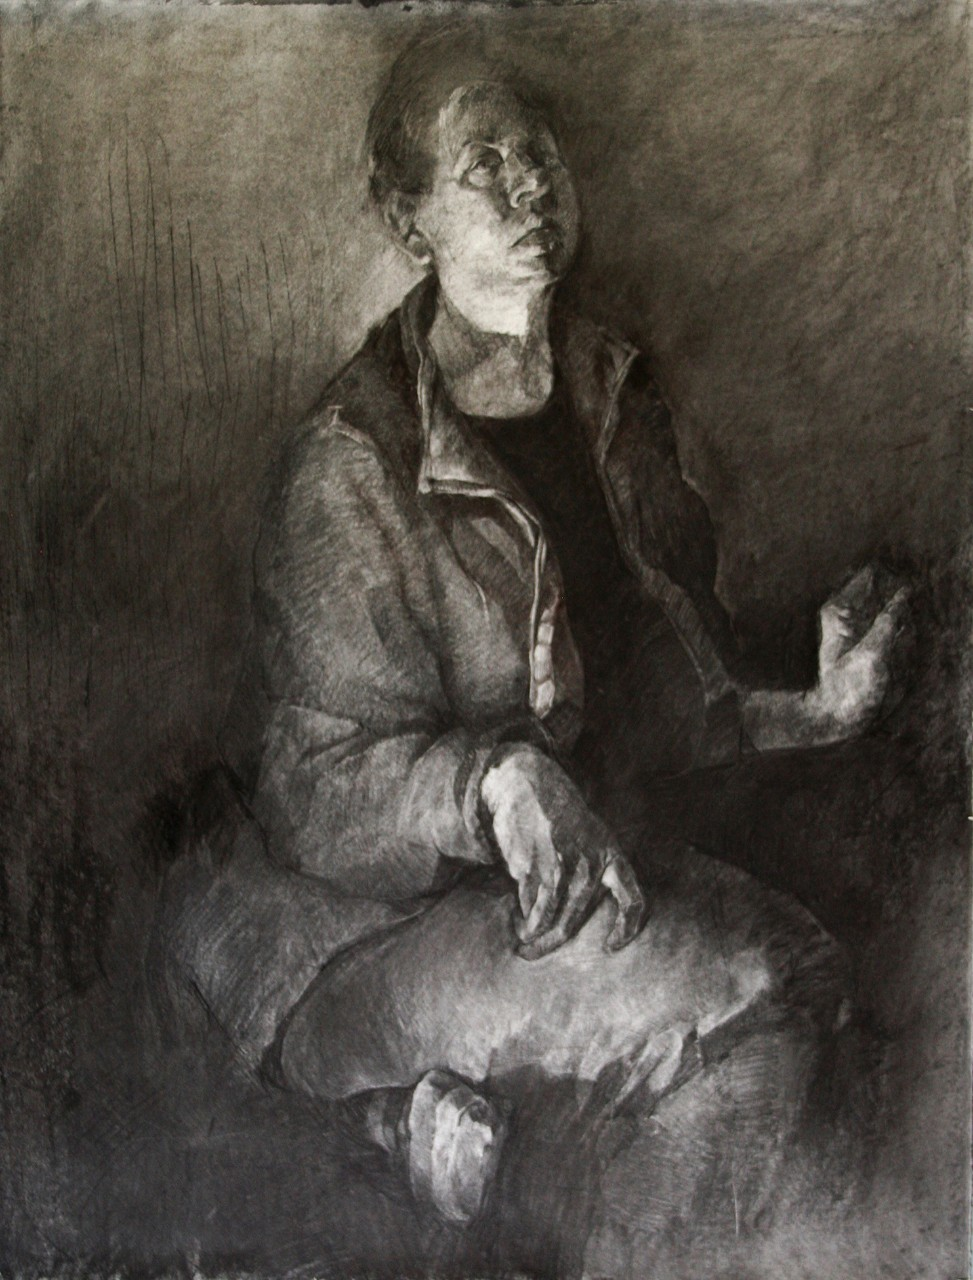 Artwork of figure gesturally drawn in black and white